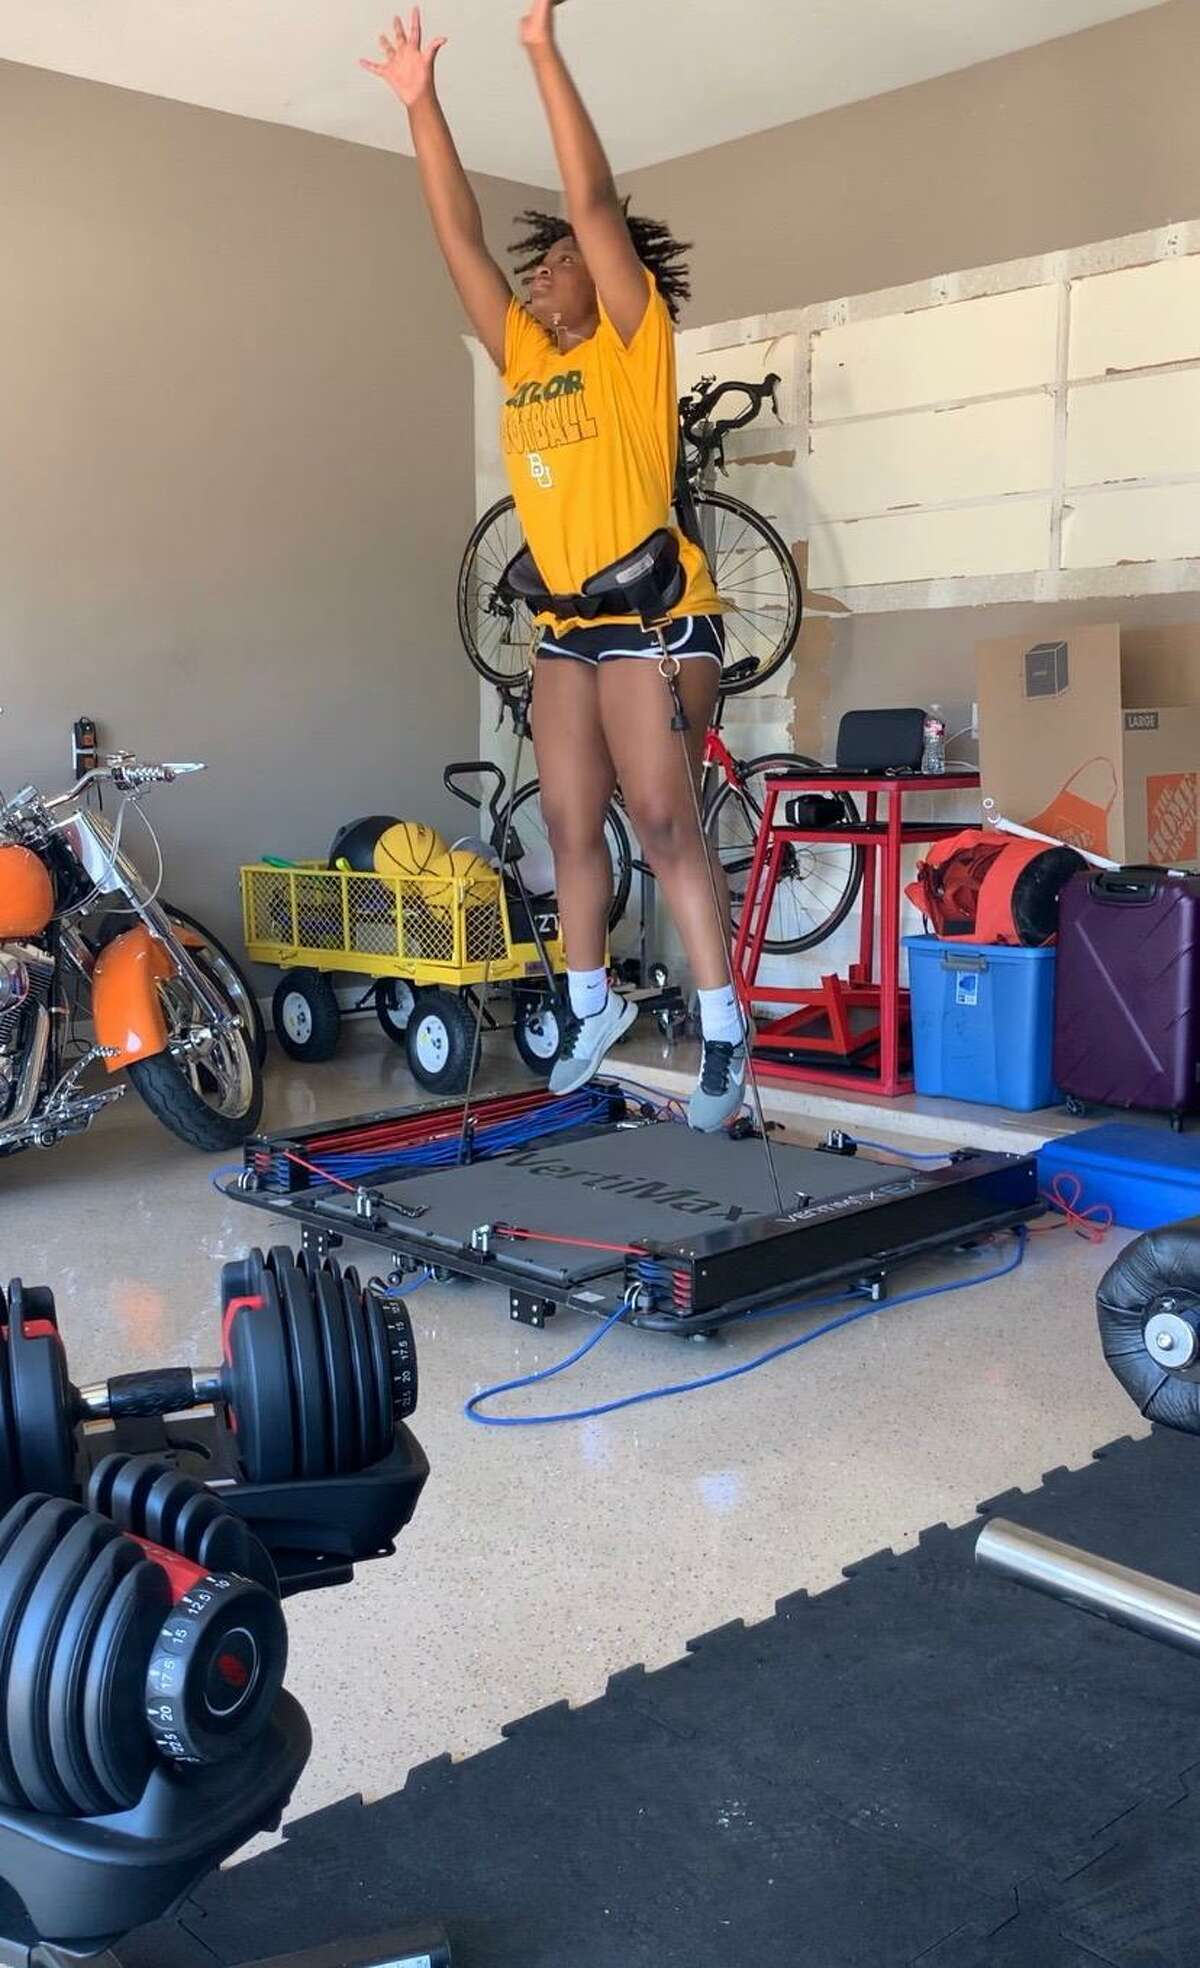 Spring head volleyball coach Stephanie Porter said athletes across Spring Independent School District haven't been able to participate in summer strength and conditioning camp, as of late June, but some have been working out from home.